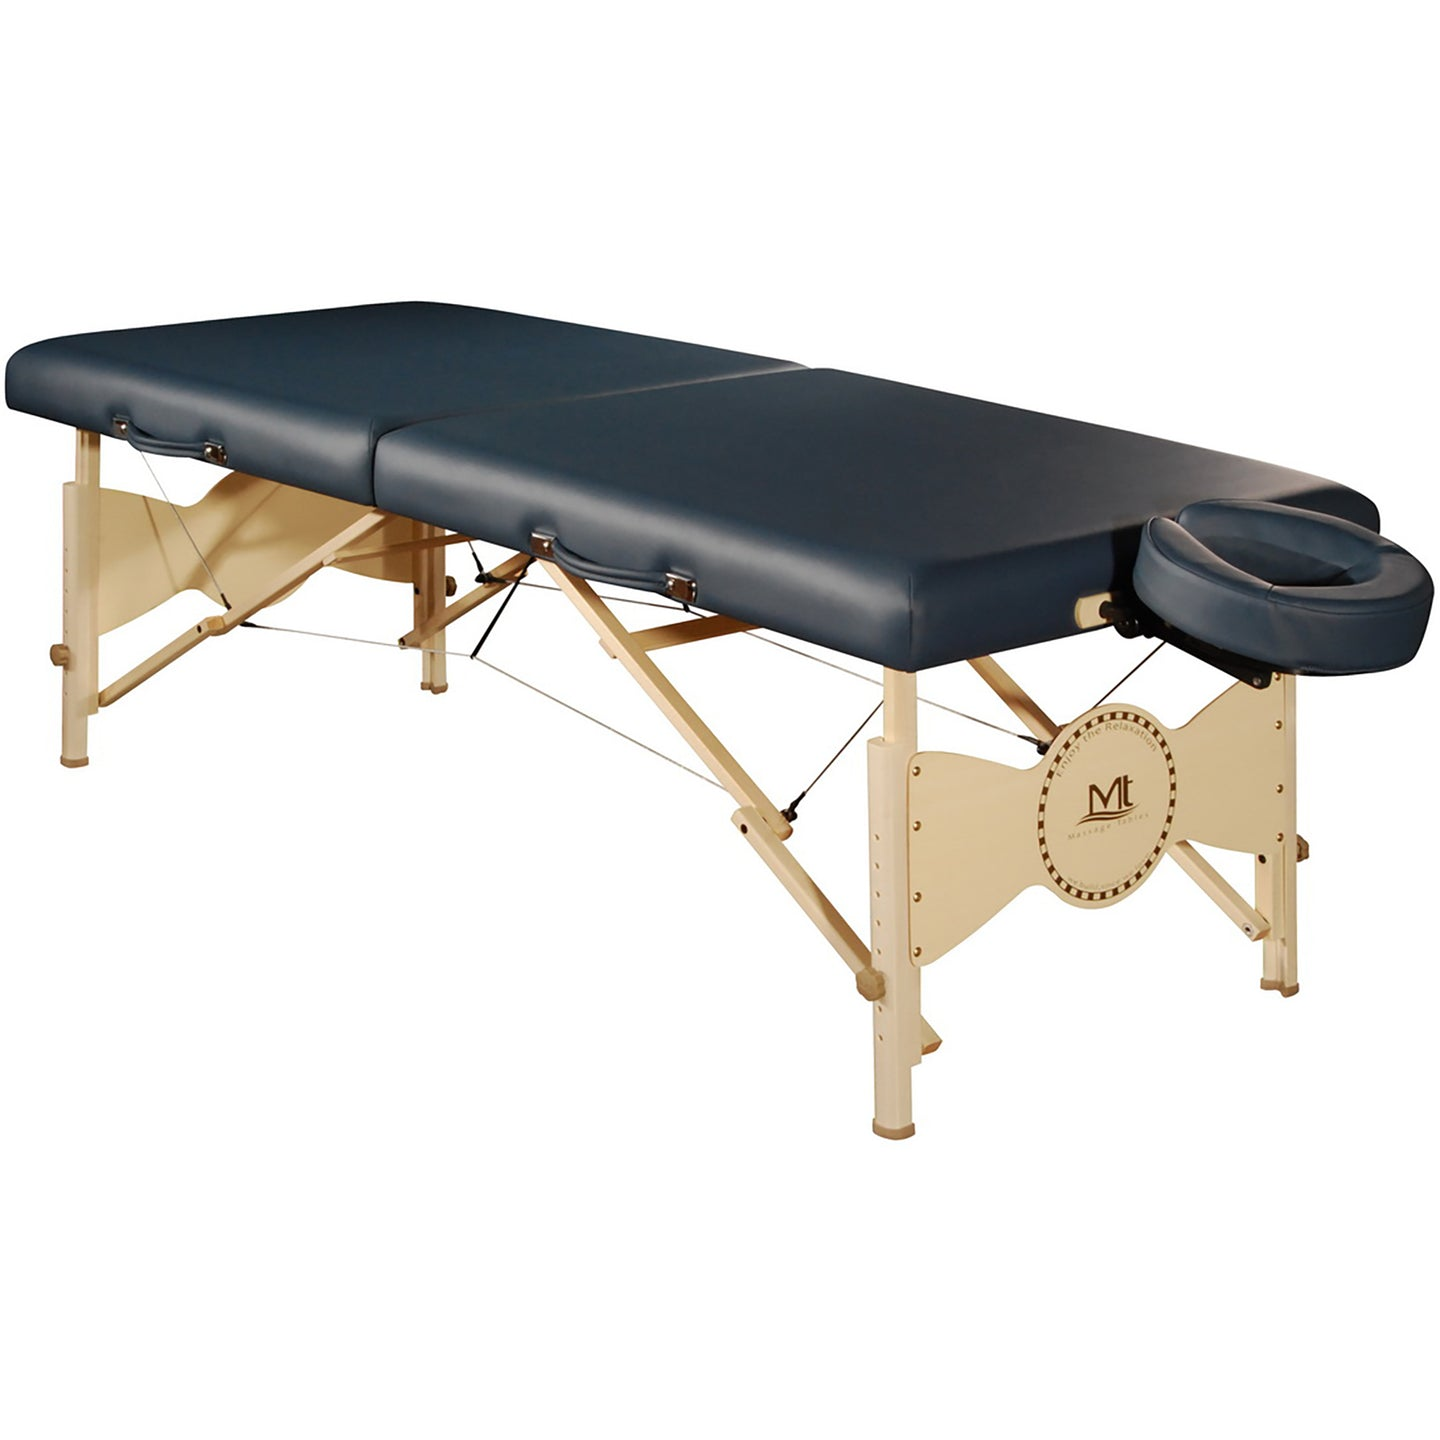 MT Massage - Midas Standard Portable Massage Table Package - Superb Massage Tables